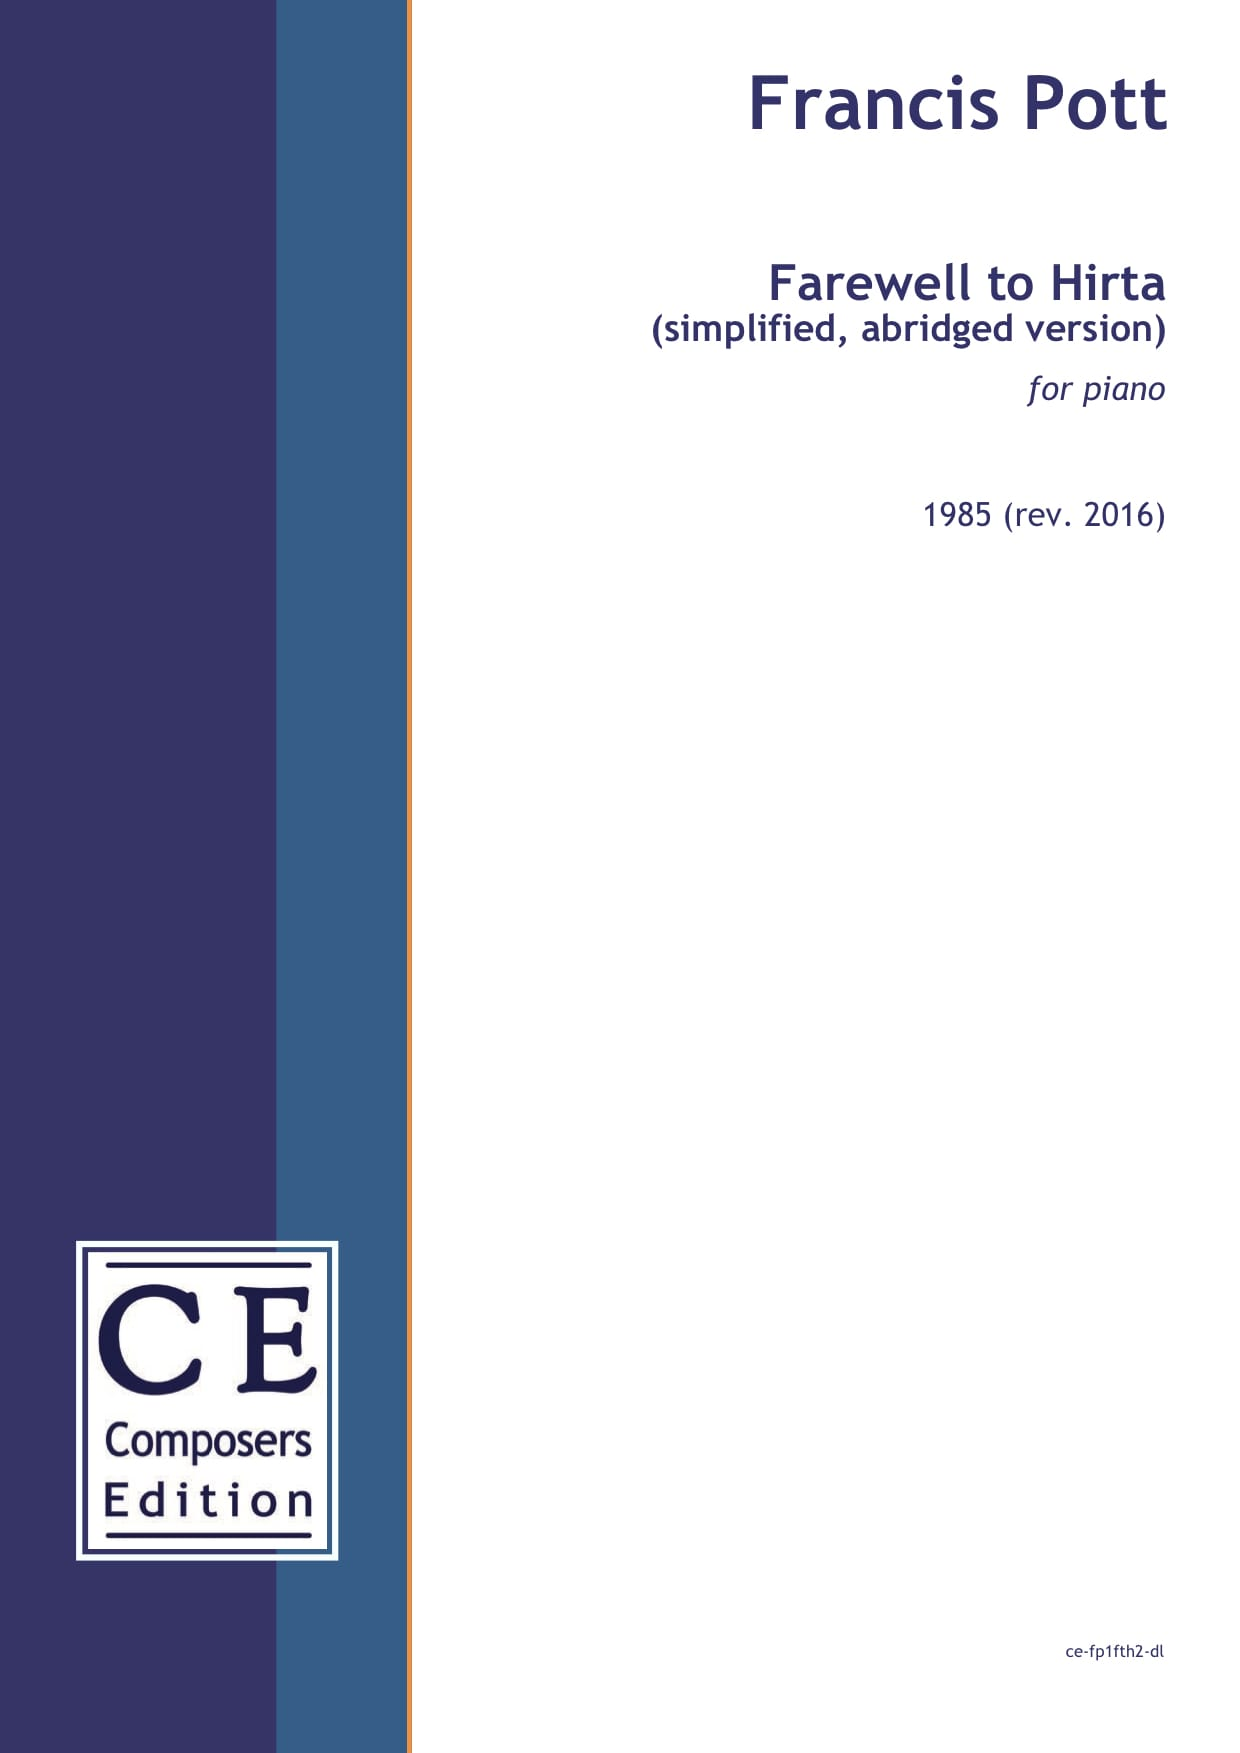 Francis Pott: Farewell to Hirta (simplified, abridged version) for piano